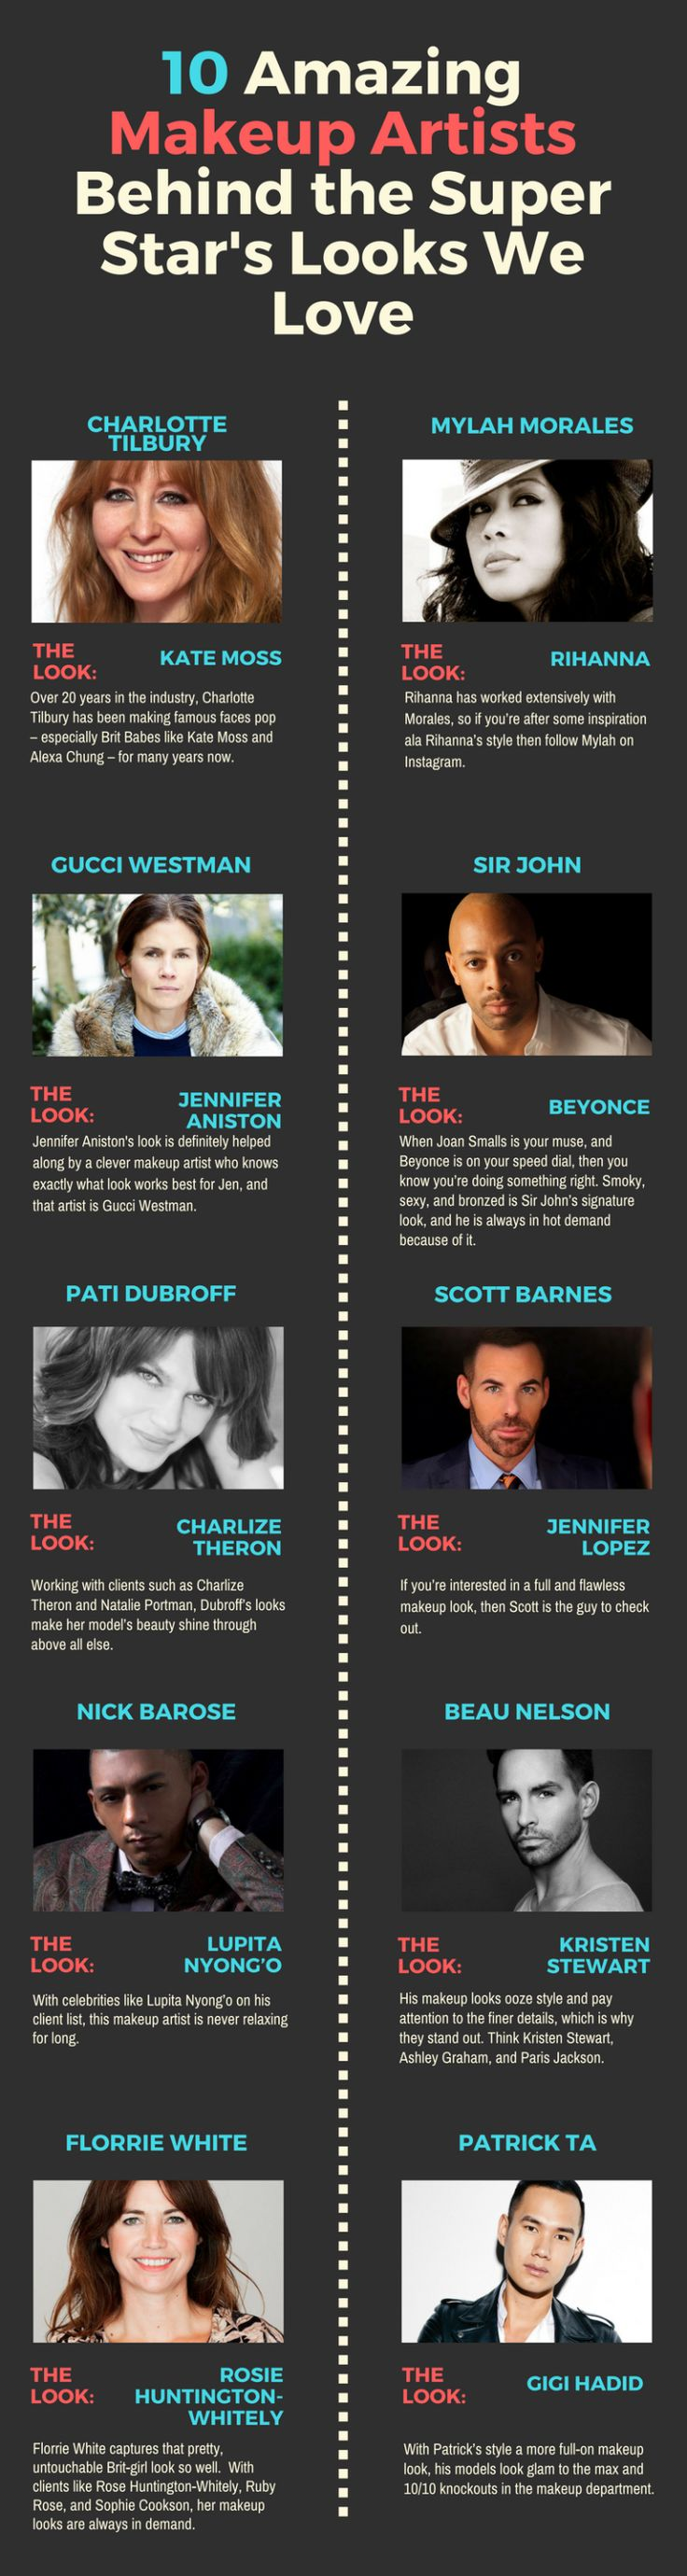 We all love celebrity stars and are fond of their beauty. The looks are often done by famous makeup artists. They are well trained and have gained knowledge and experience by joining one of the best makeup schools. Pay a look to this Infographic and get to know the 10 amazing makeup artists behind the super star's look.